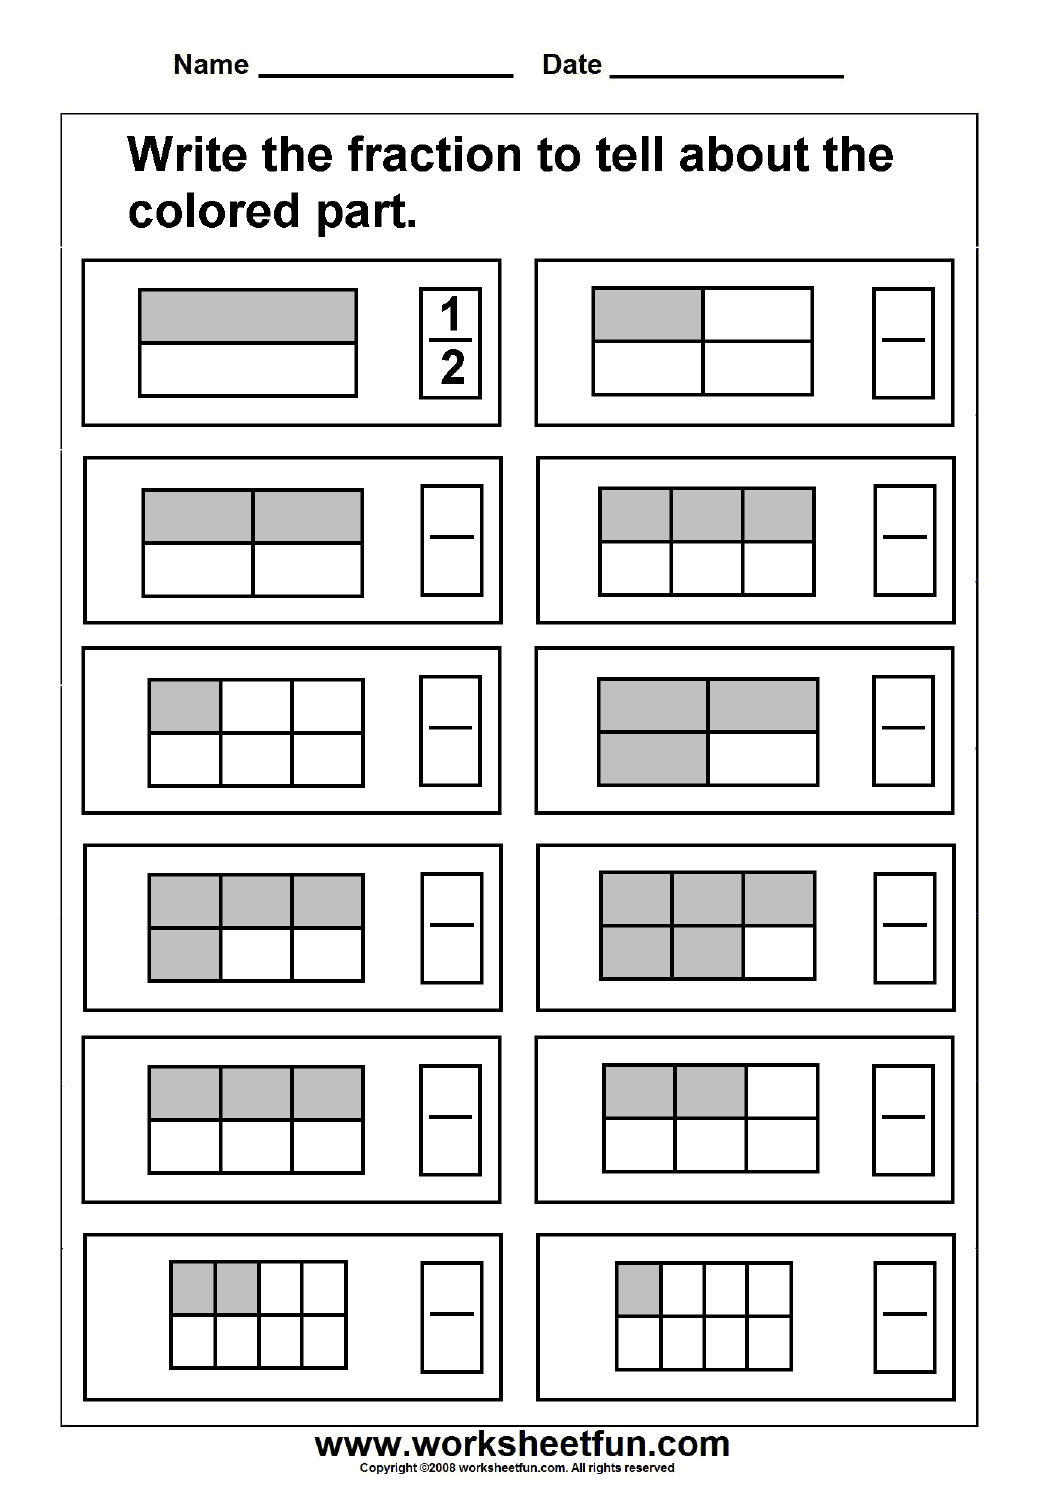 Fraction FREE Printable Worksheets Worksheetfun – Free Printable Fraction Worksheets